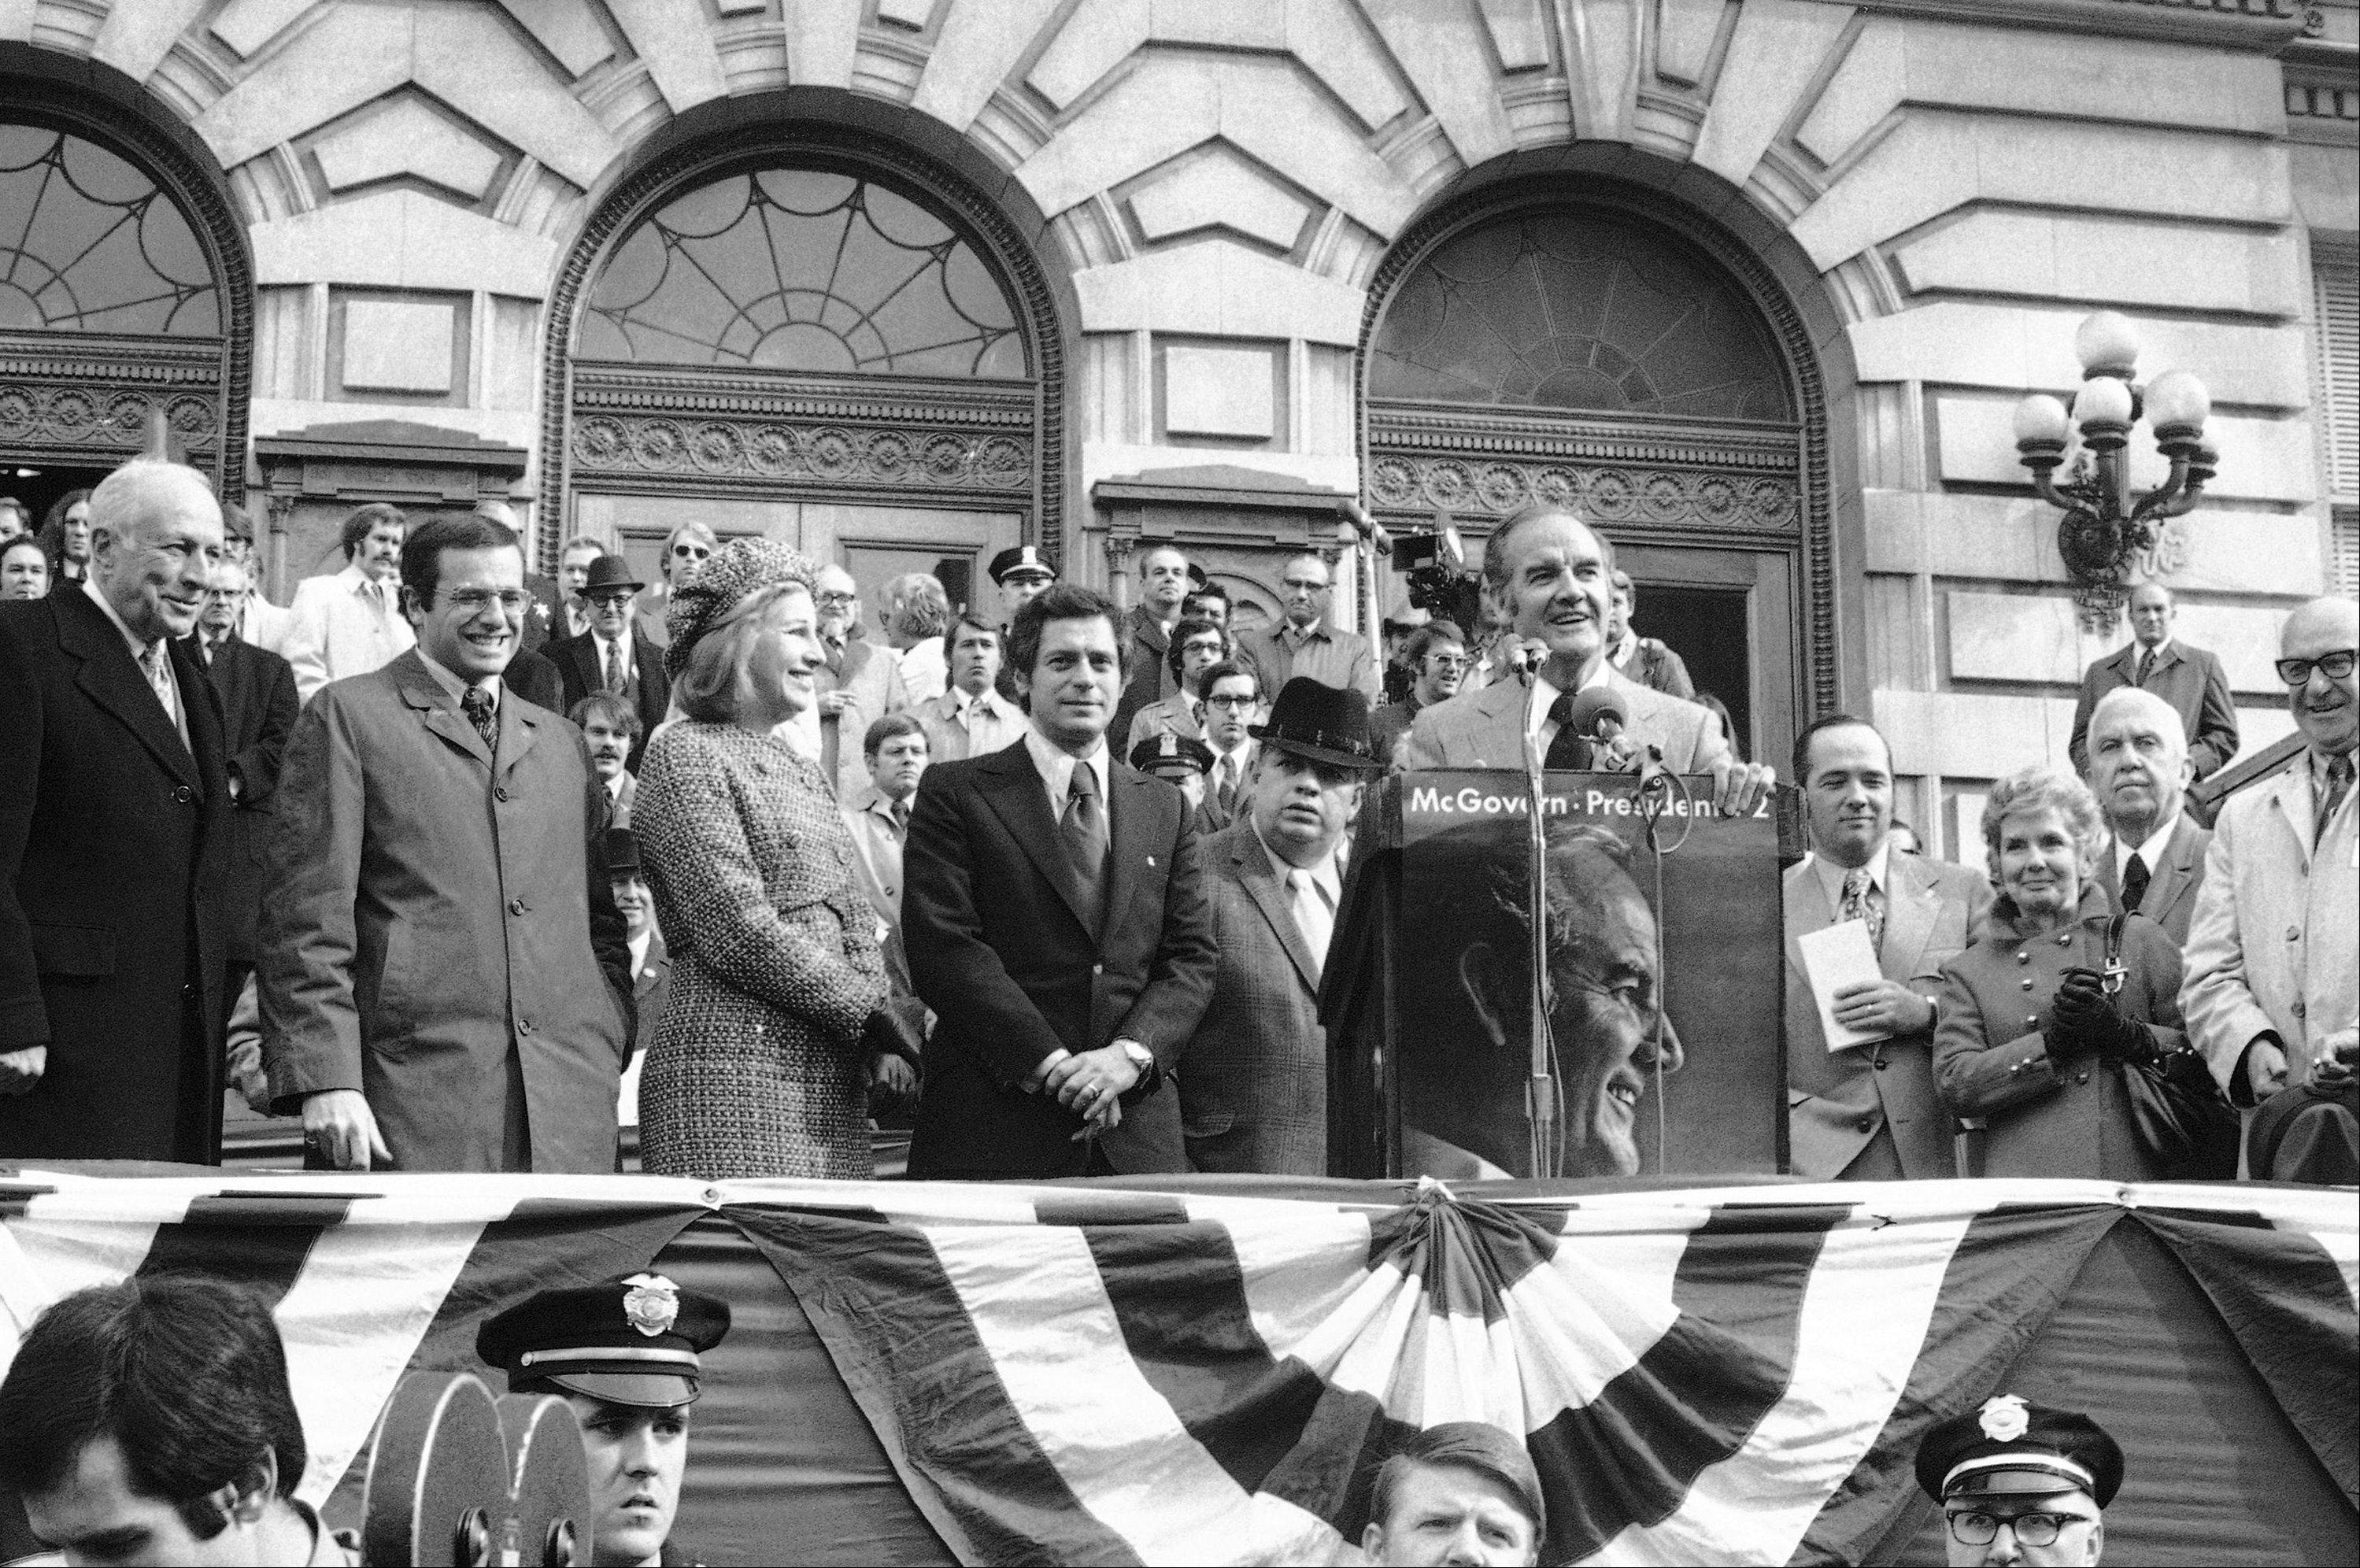 Senator George McGovern made a campaign stop in downtown Syracuse, Oct. 31, 1972, and was accompanied by mayors from many cities in the state. From left: Mayor Erastus Corning of Albany, Mayor Alfred Del Bello of Yonkers; Mrs. And Mr. Alexander of Syracuse, Senator McGovern at podium, Joseph Crangle, state chairman, Mrs. and Mayor Frank Sedita of Buffalo.